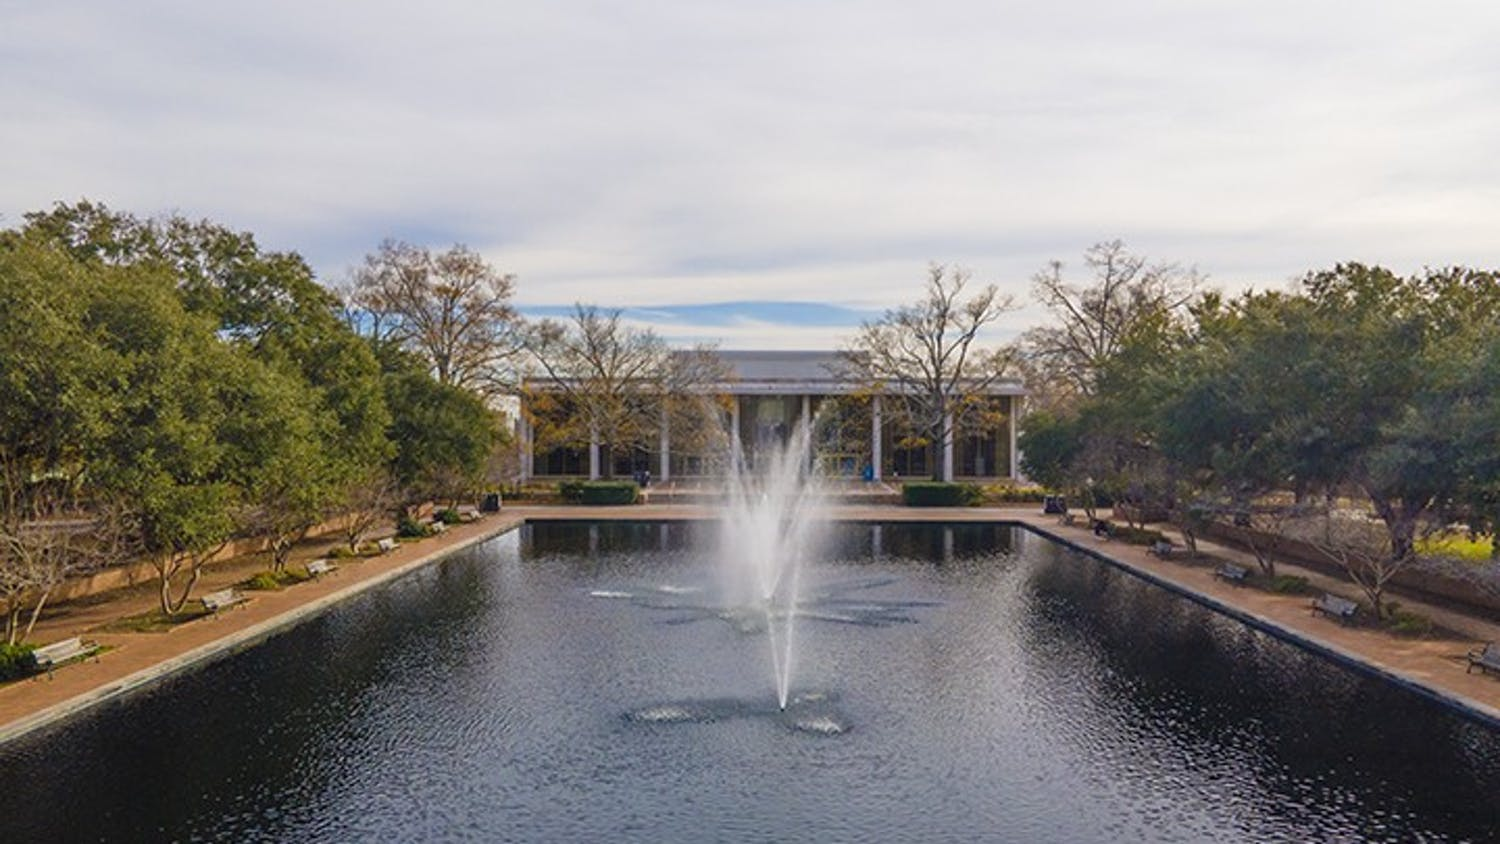 Aerial shot of Thomas Cooper Library showing the reflecting pool, which has benches, often used as study spots, lining it.